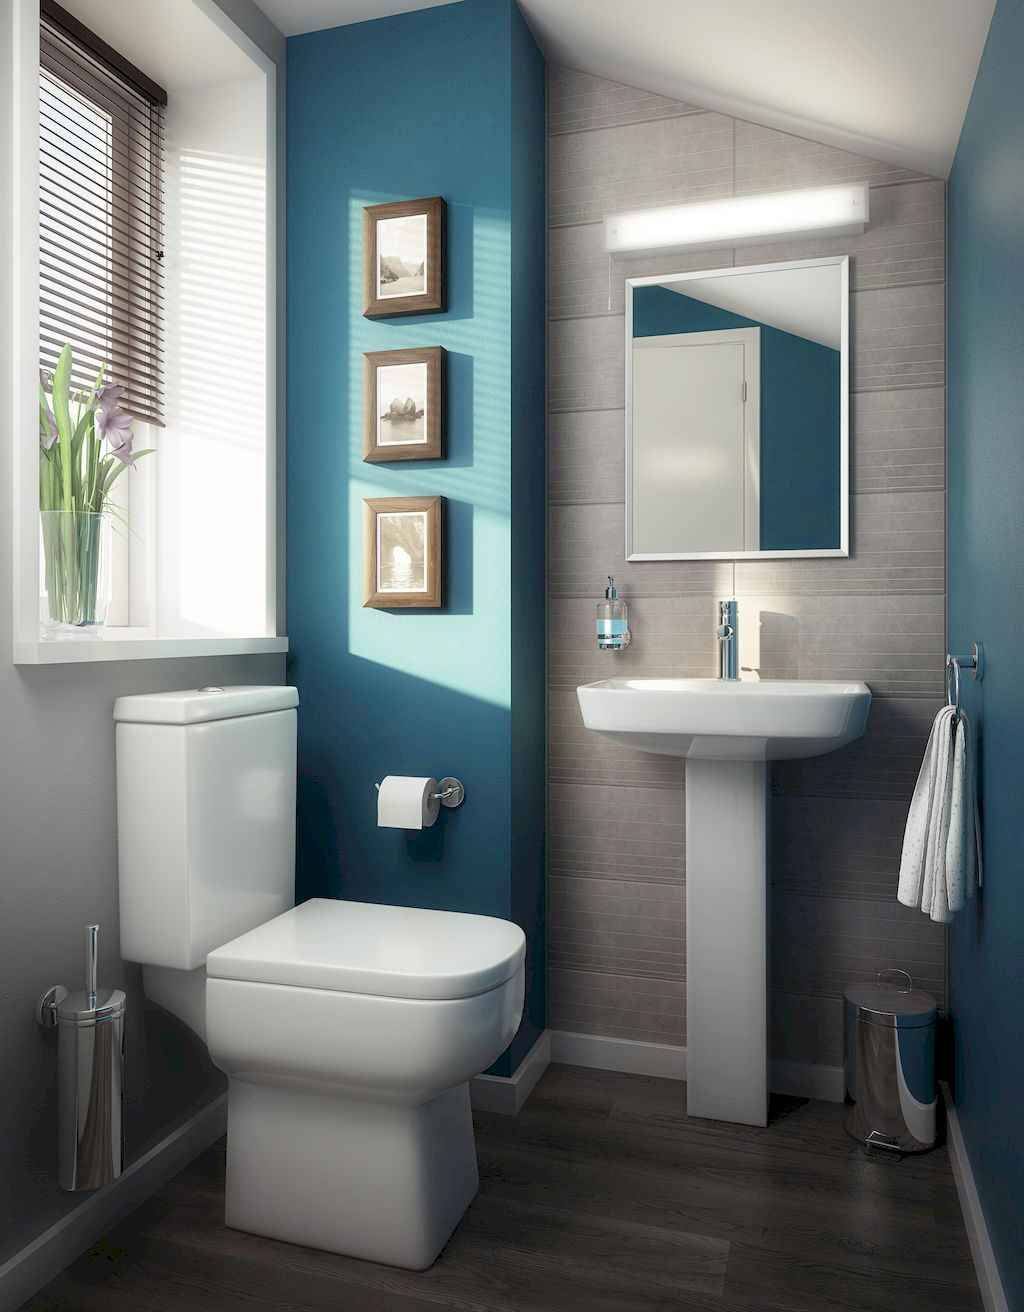 111 awesome small bathroom remodel ideas on a budget (40)